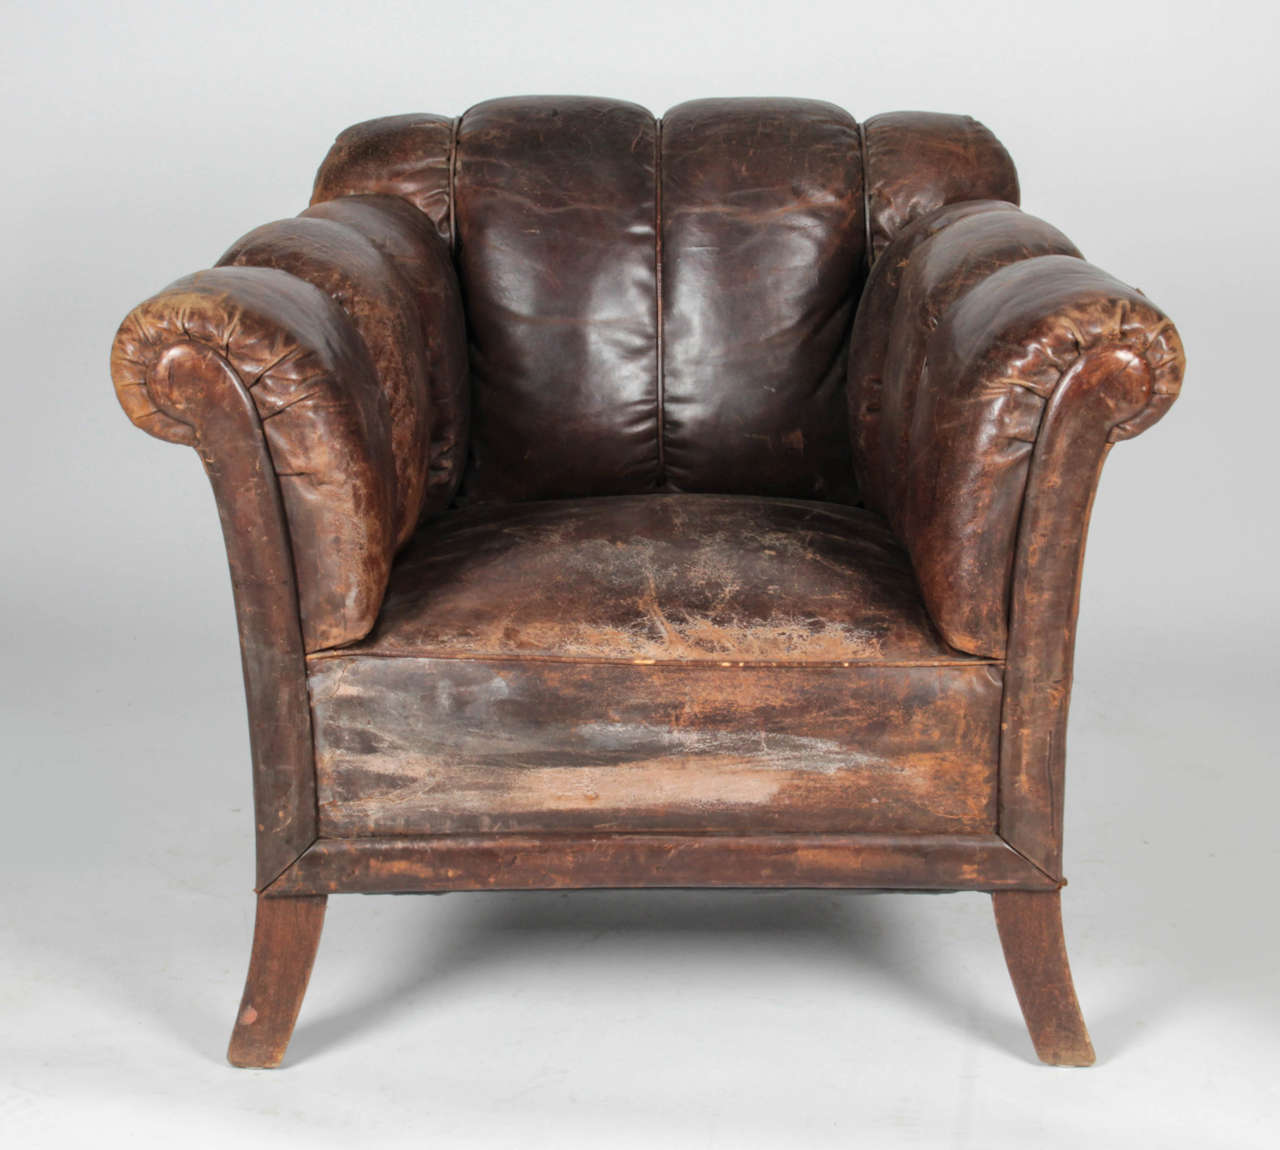 Chair For Sale 20th Century Distressed Vertical Tufted Leather Club